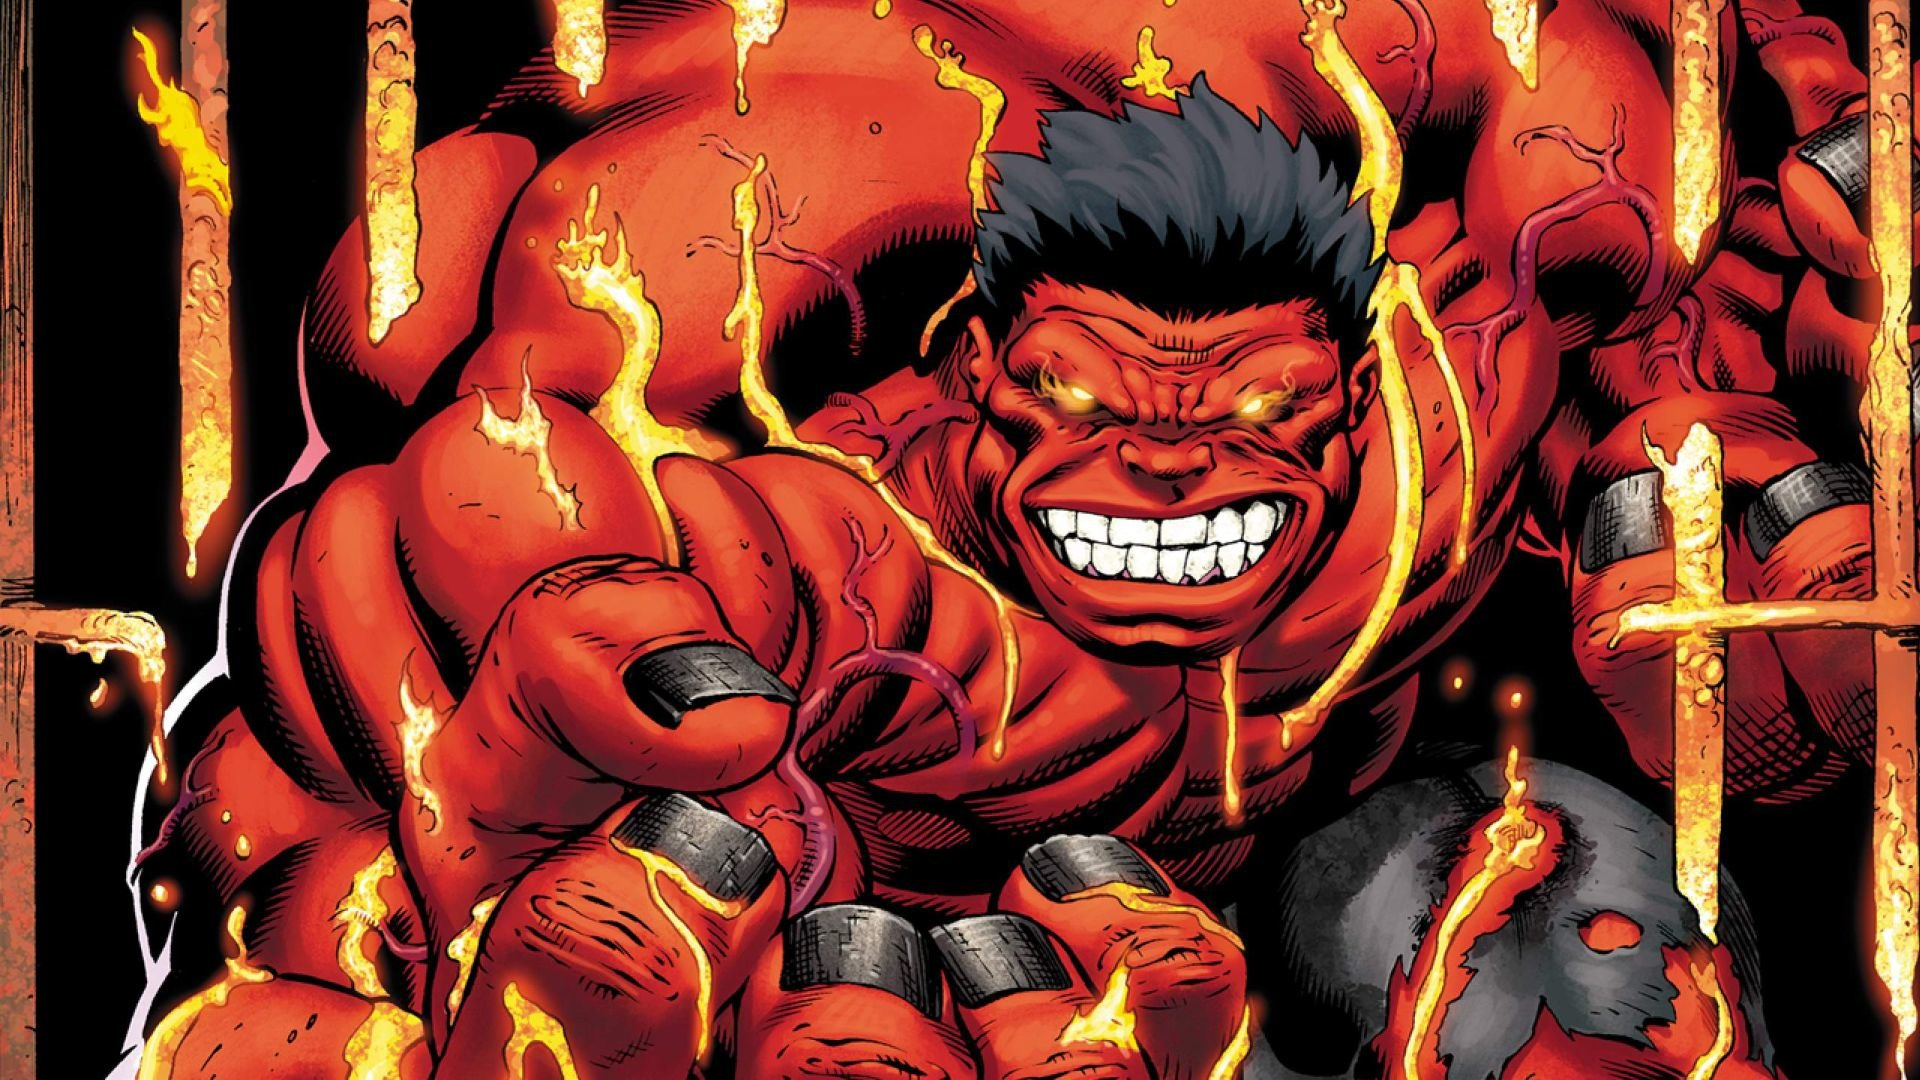 Red Hulk Wallpapers 1920x1080 Full Hd 1080p Desktop Backgrounds